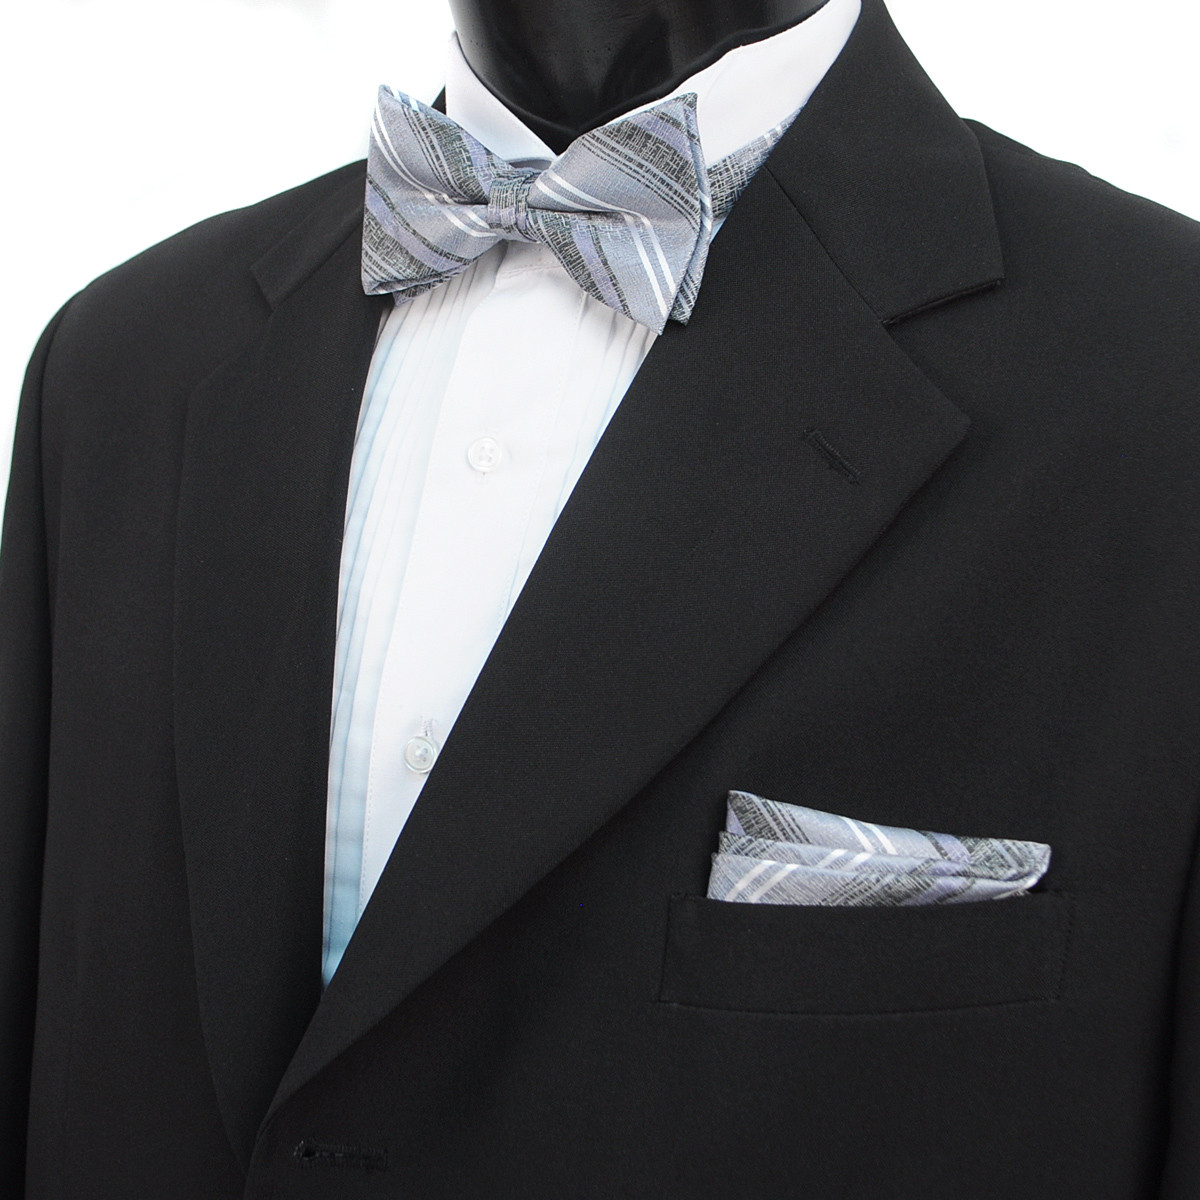 3pc Men's Charcoal Clip-on Suspenders, Distressed Striped Bow Tie & Hanky Sets FYBTHSU-GRY4